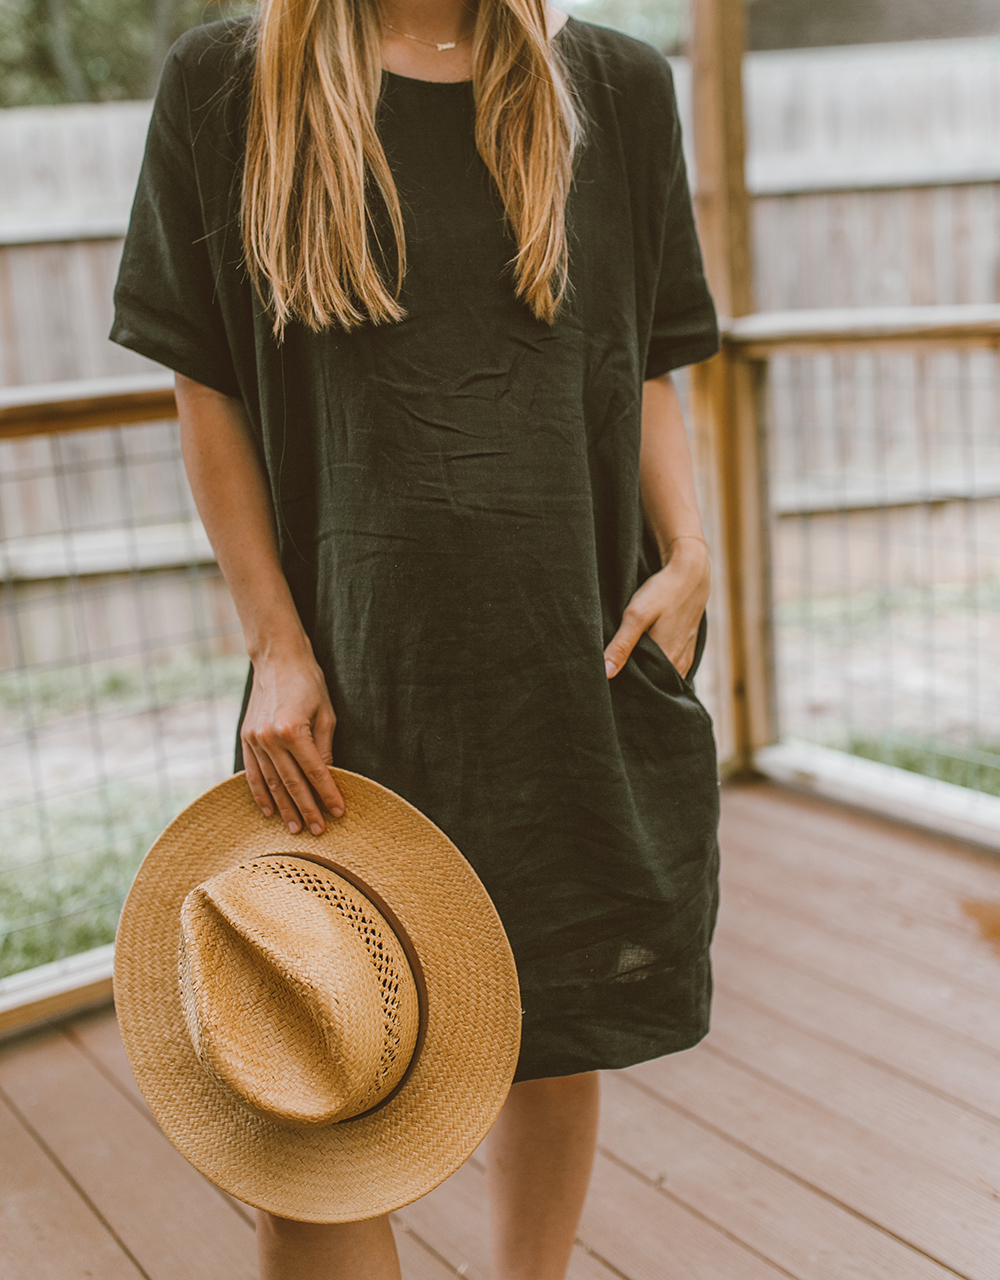 livvyland-blog-olivia-watson-linen-shift-dress-eileen-fisher-organic-handkerchief-boxy-dress-austin-texas-patio-pregnancy-summer-outfit-10